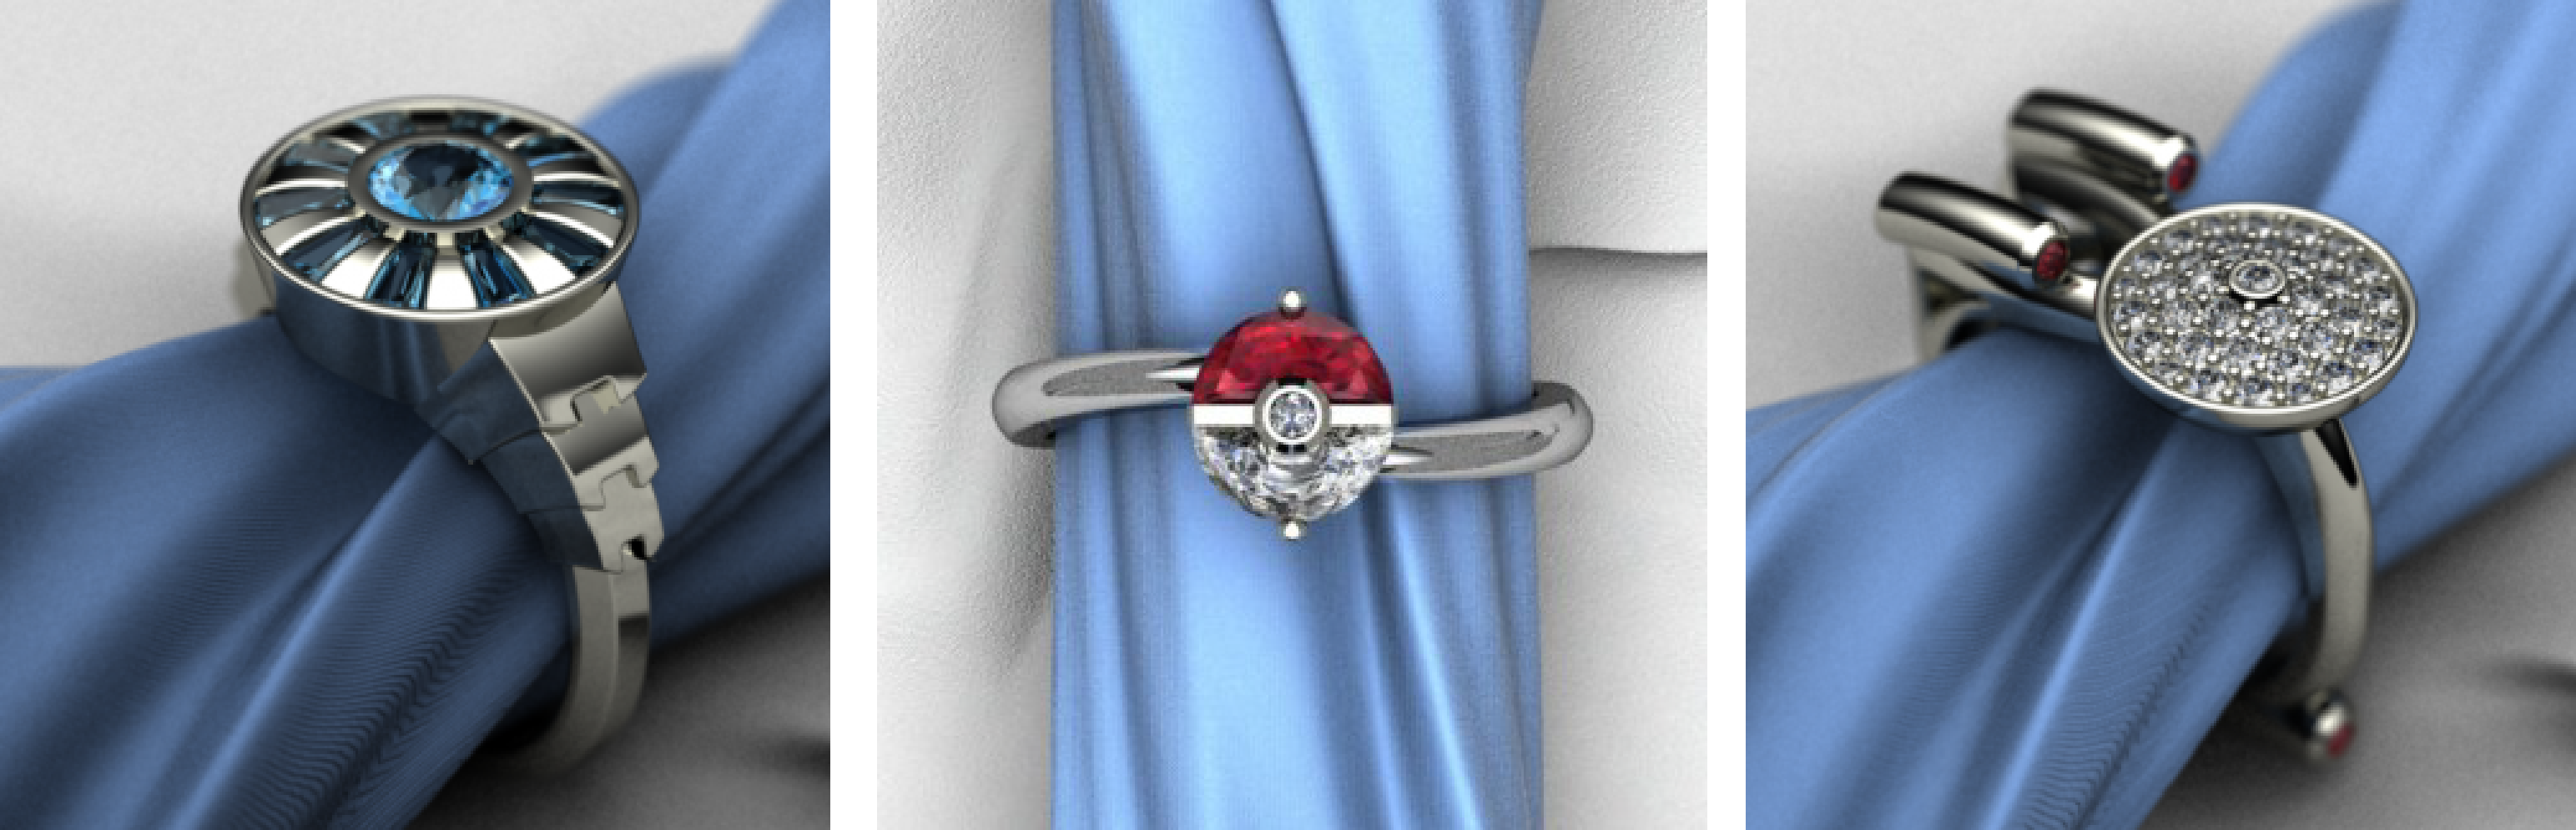 16 Gloriously Geeky Wedding Rings For Committed Nerds